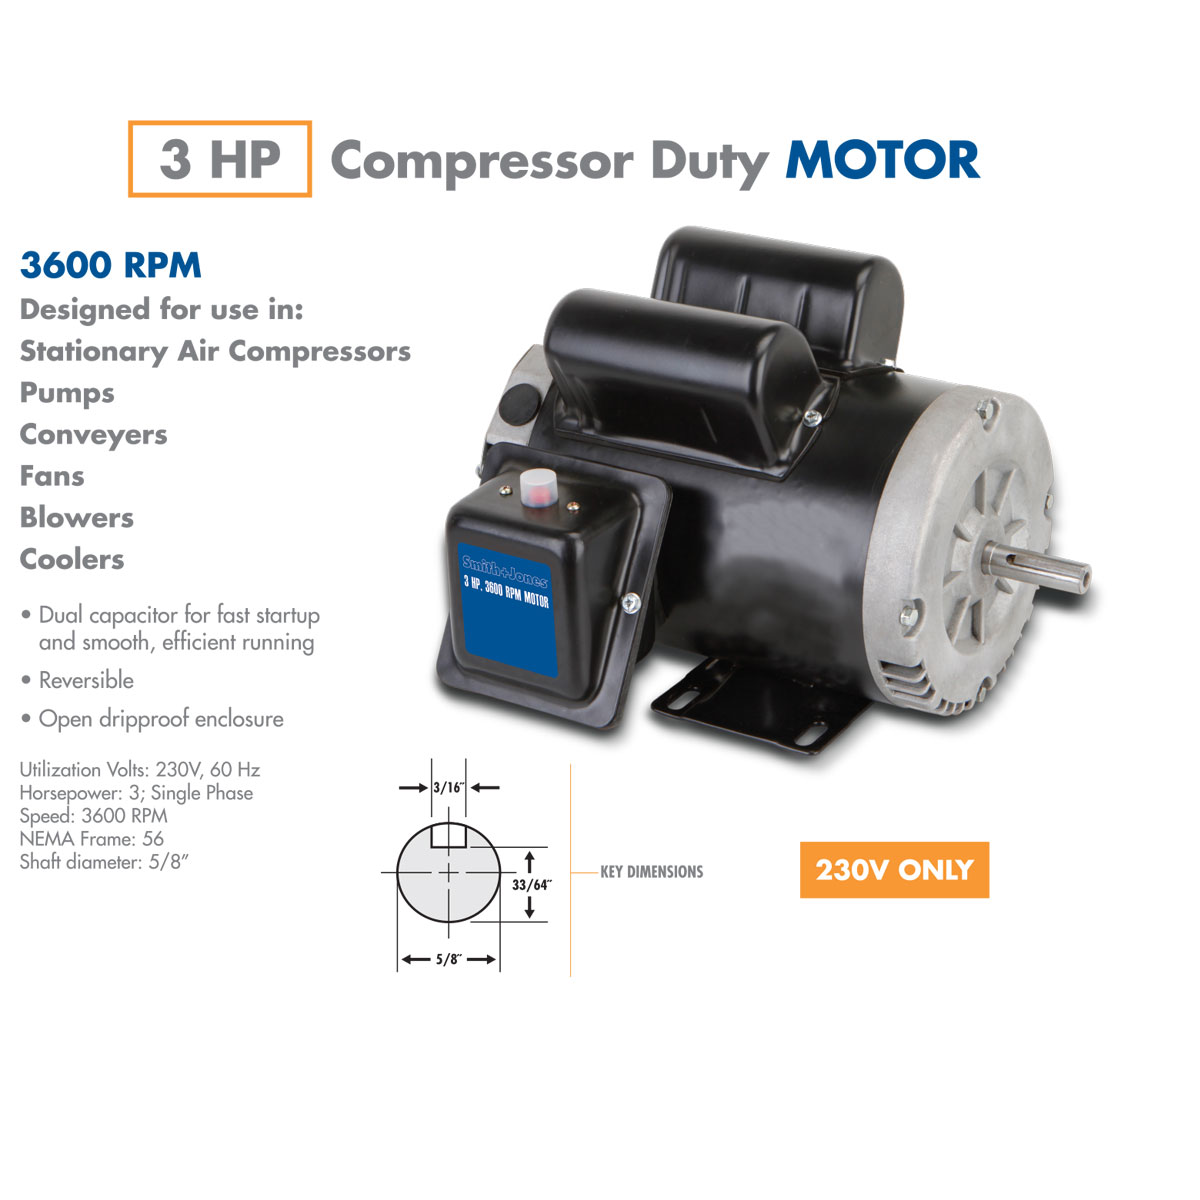 3 HP Compressor Duty Motor  Hp Volt Motor Wiring Diagram on 2 pole thermostat wiring diagram, 110 electrical outlet wiring diagram, electric meter socket wiring diagram, 12 volt motor wiring diagram, 220 single phase wiring diagram, 240 volt 3 phase wiring, motor electric generator diagram, 240 volt electrical wiring, 4 wire dc motor diagram, 480 volt motor wiring diagram, electric hot water heater wiring diagram, ac electric motor diagram, 3 phase outlet wiring diagram, 230v single phase wiring diagram, 115 volt motor wiring diagram, 220 outlet wiring diagram, 120 volt wiring diagram, 110 volt motor wiring diagram, 230 volt motor wiring diagram, 208 volt motor wiring diagram,